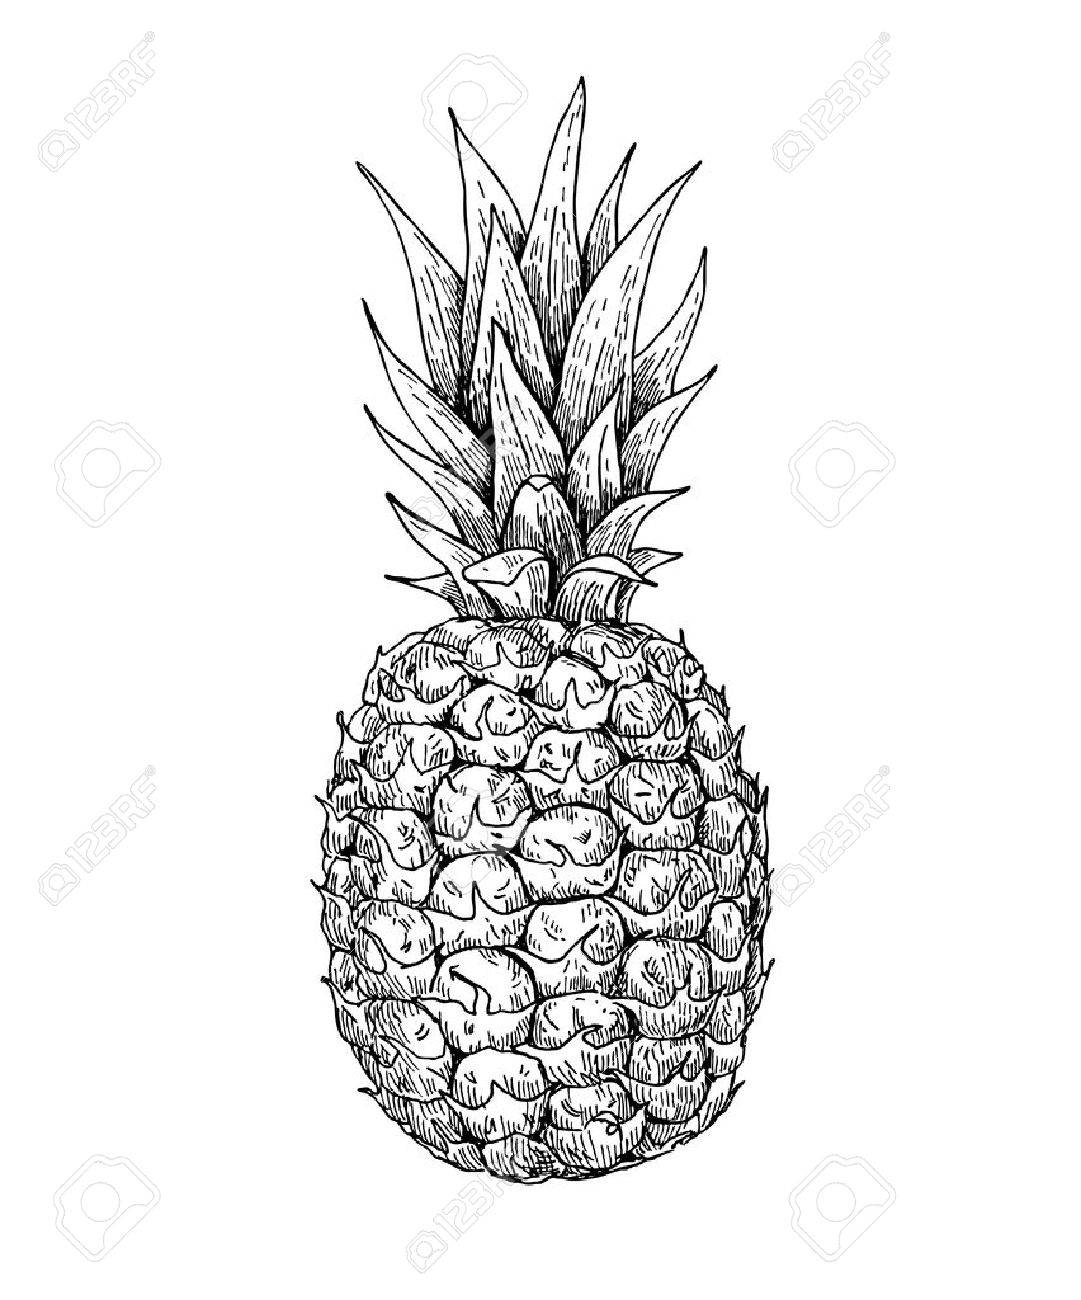 pineapple drawing clip art affordable laughing pineapple vector